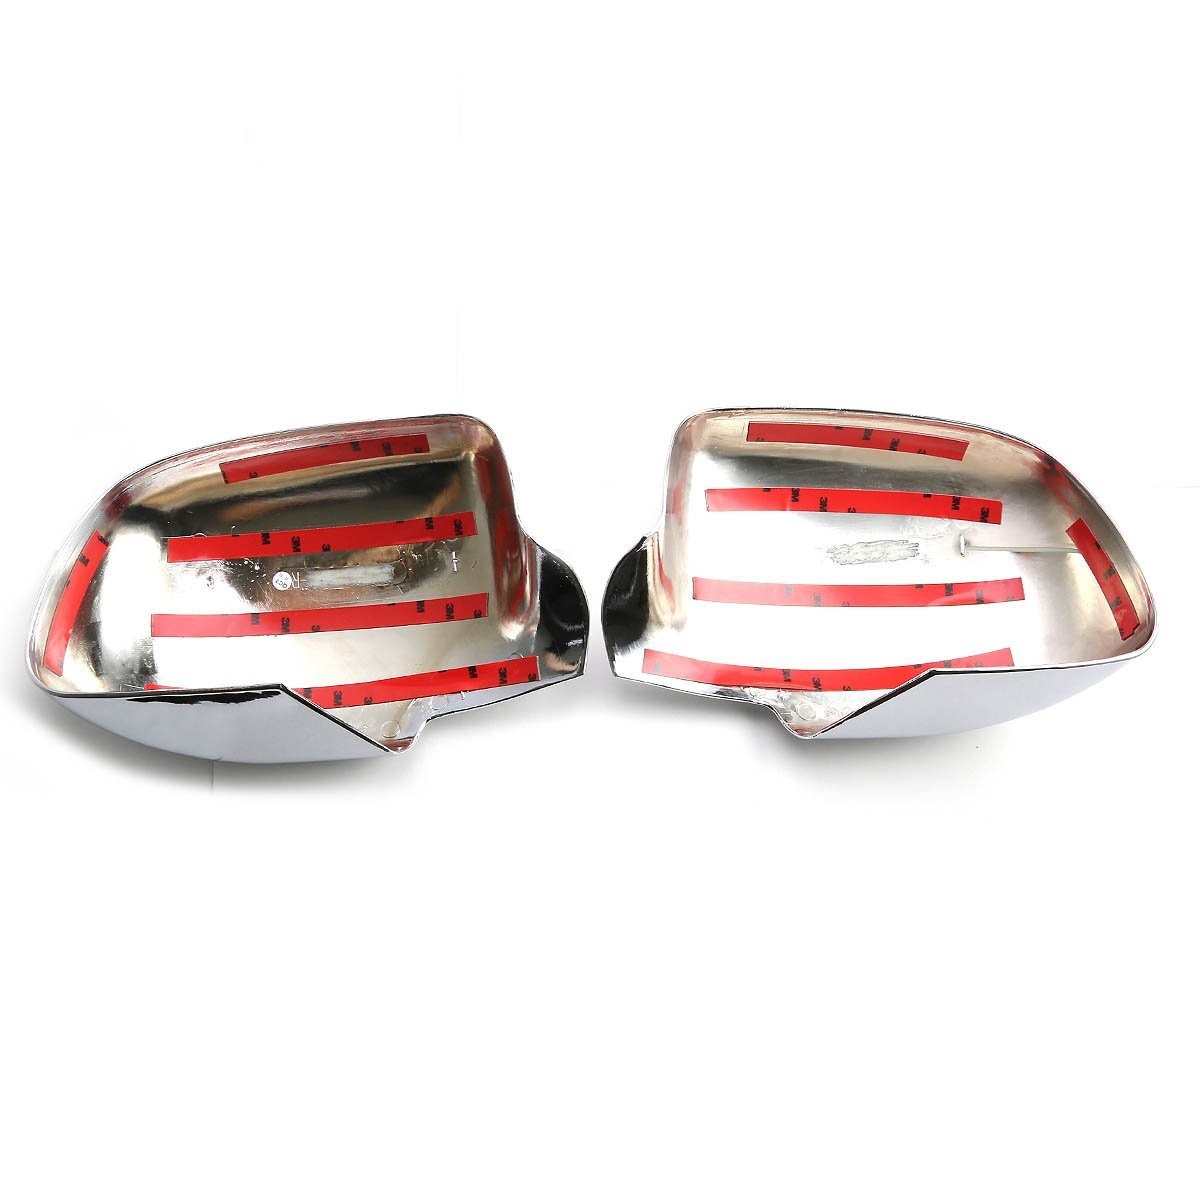 06 Chevrolet Avalanche 1500/2500 Chrome Plated Side Mirror Cover